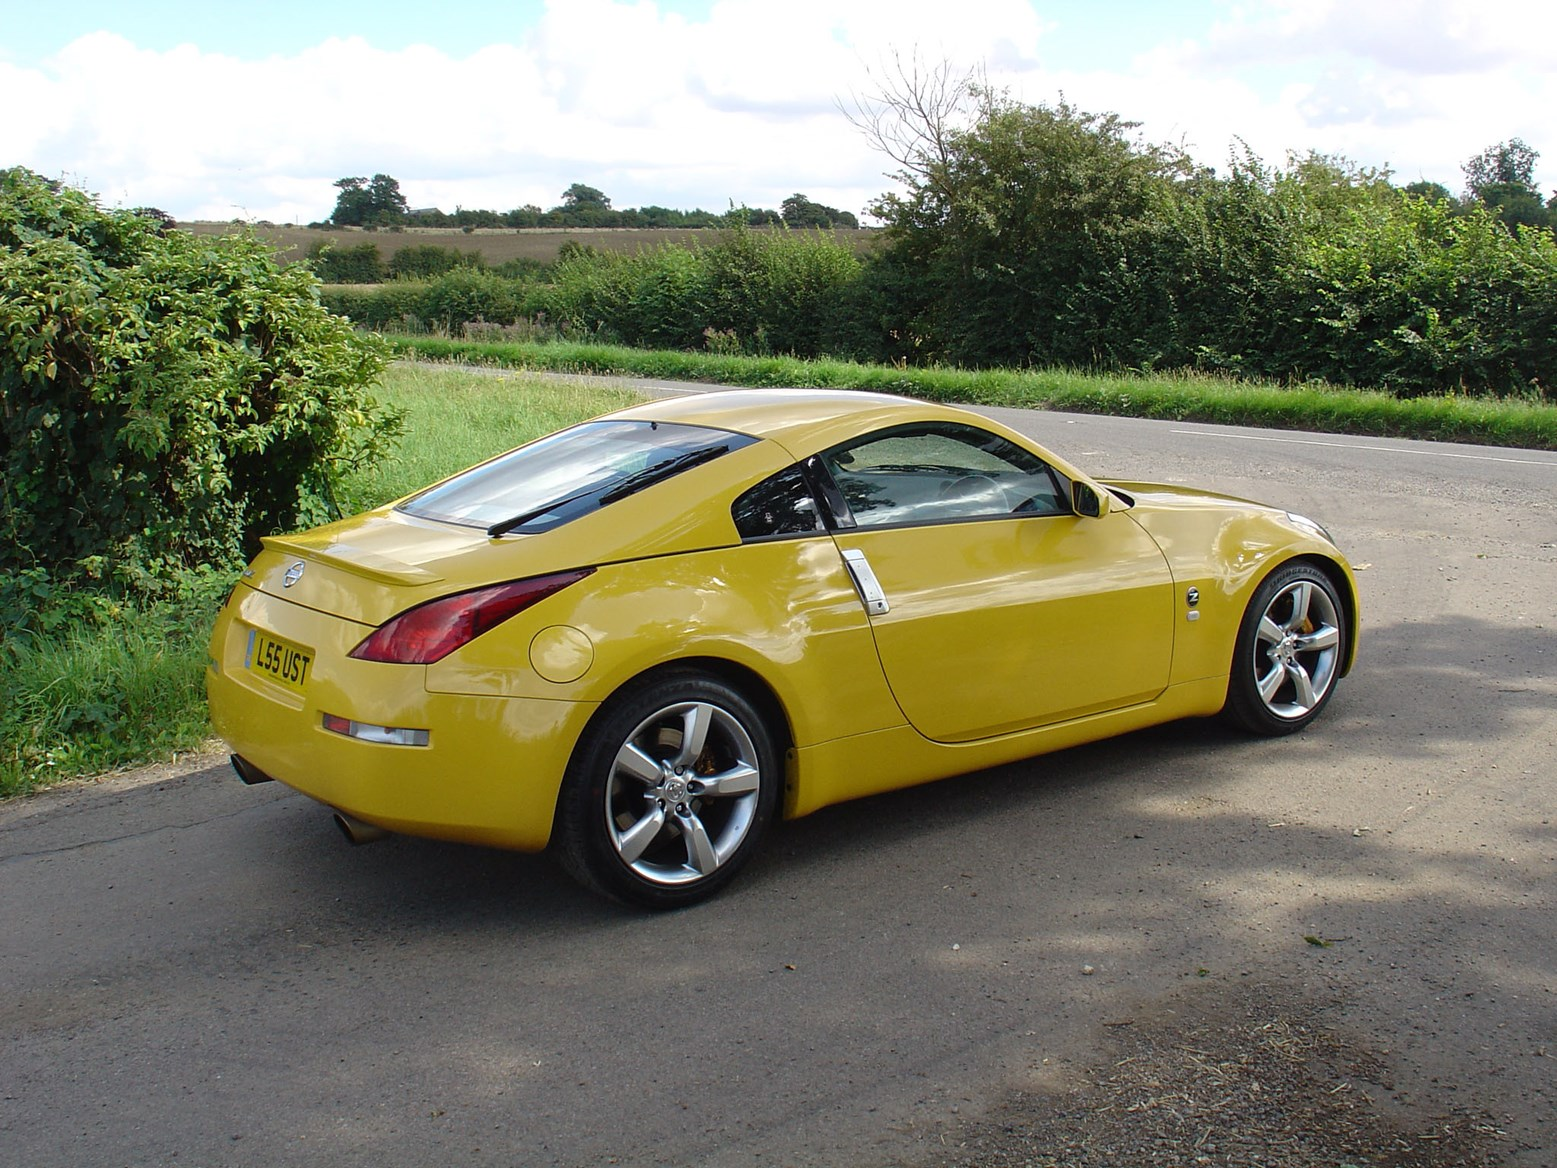 Nissan 350z Review >> Nissan 350Z Coupé Review (2003 - 2010) | Parkers